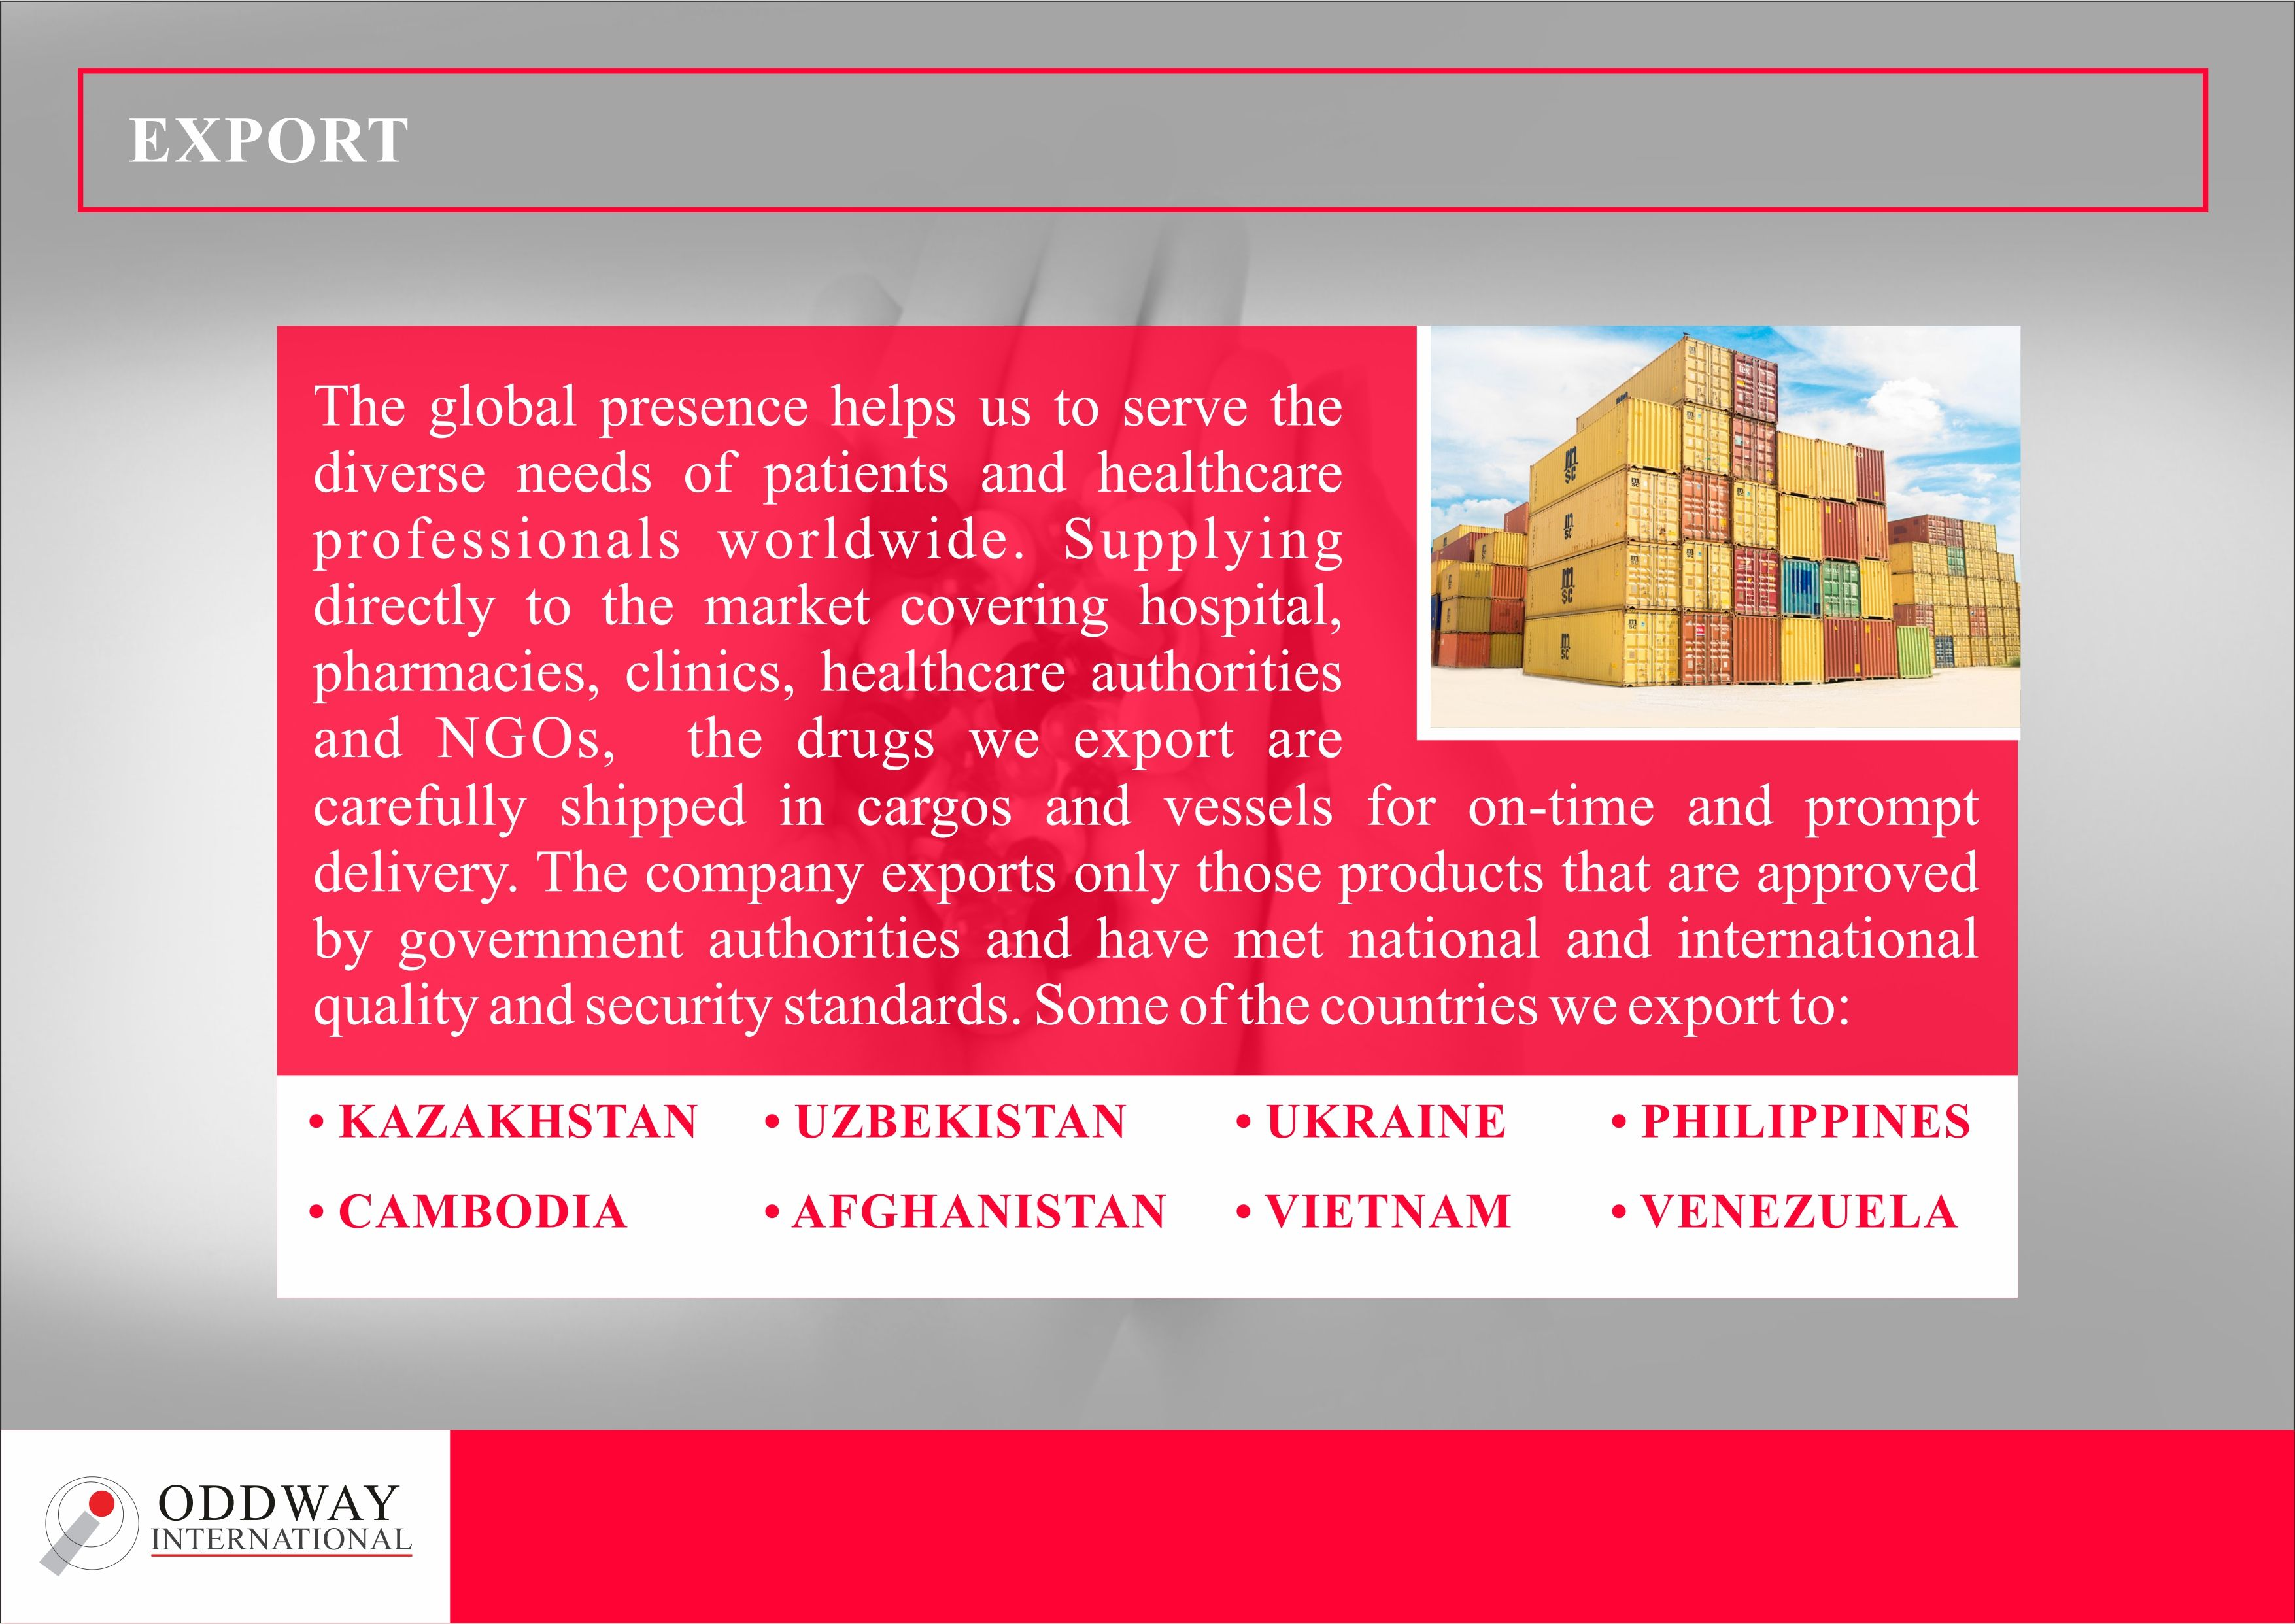 We are India's leading pharmaceutical wholesale exporter offering